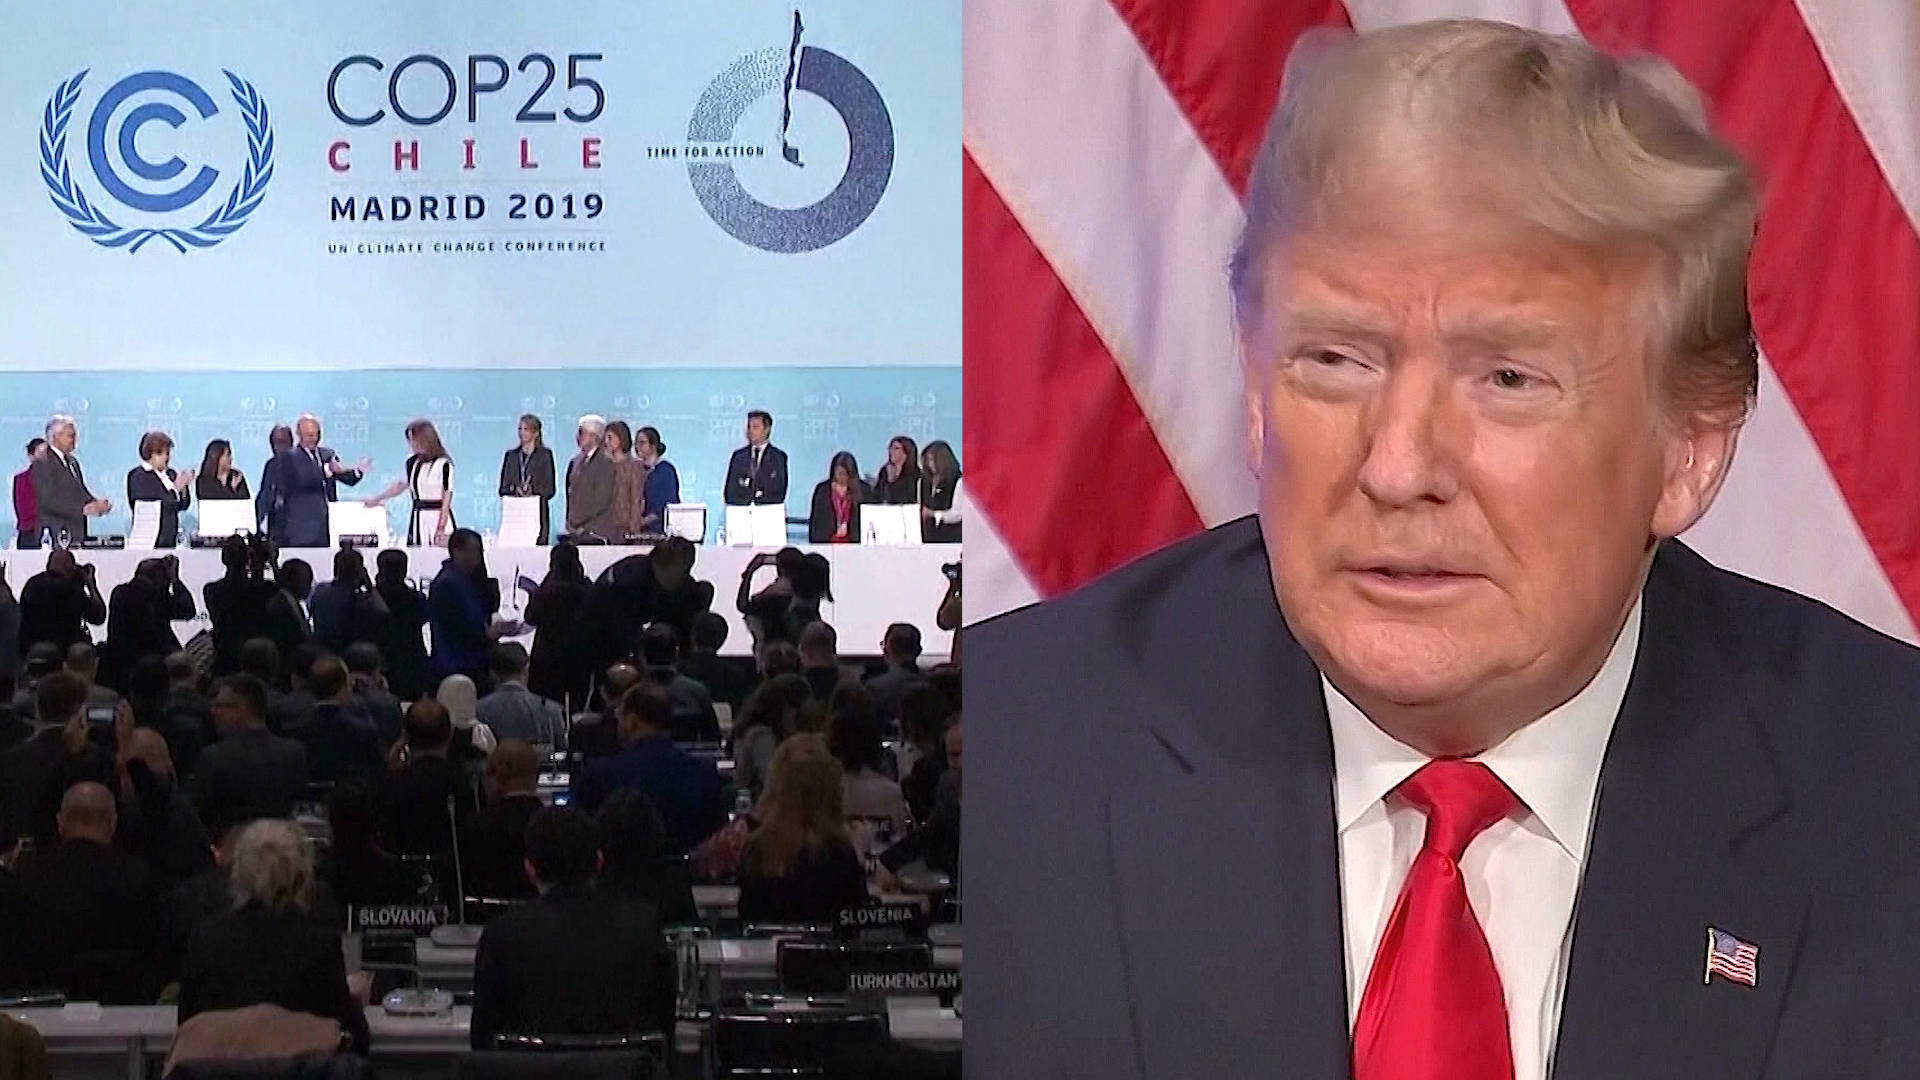 """The U.S. Has Almost No Official Presence at COP25 But Is Still """"Obstructing Any Progress"""""""